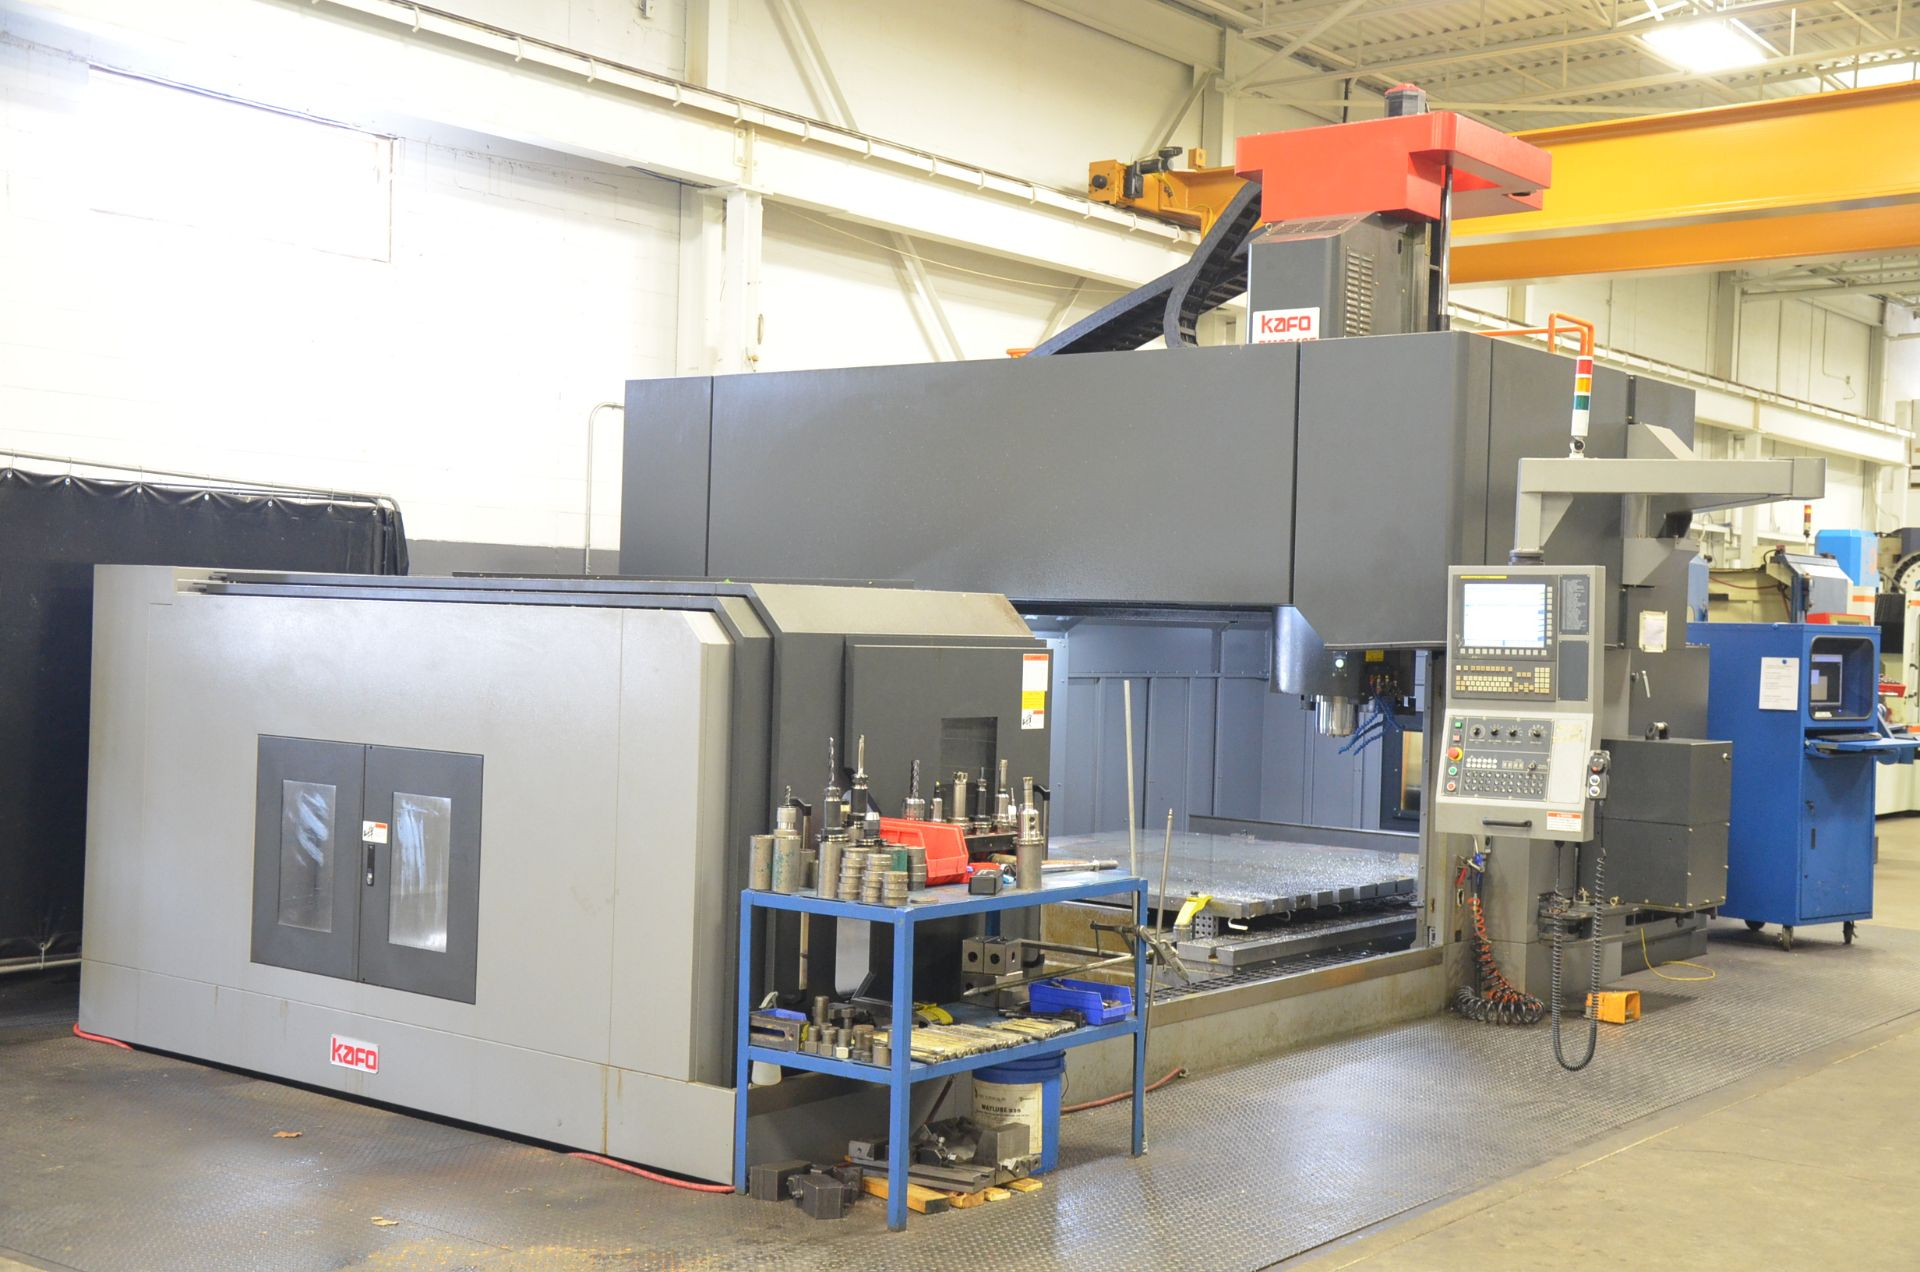 KAFO (INSTALLED NEW IN 2018) BMC-3127 CNC DOUBLE COLUMN VERTICAL MACHINING CENTER WITH FANUC